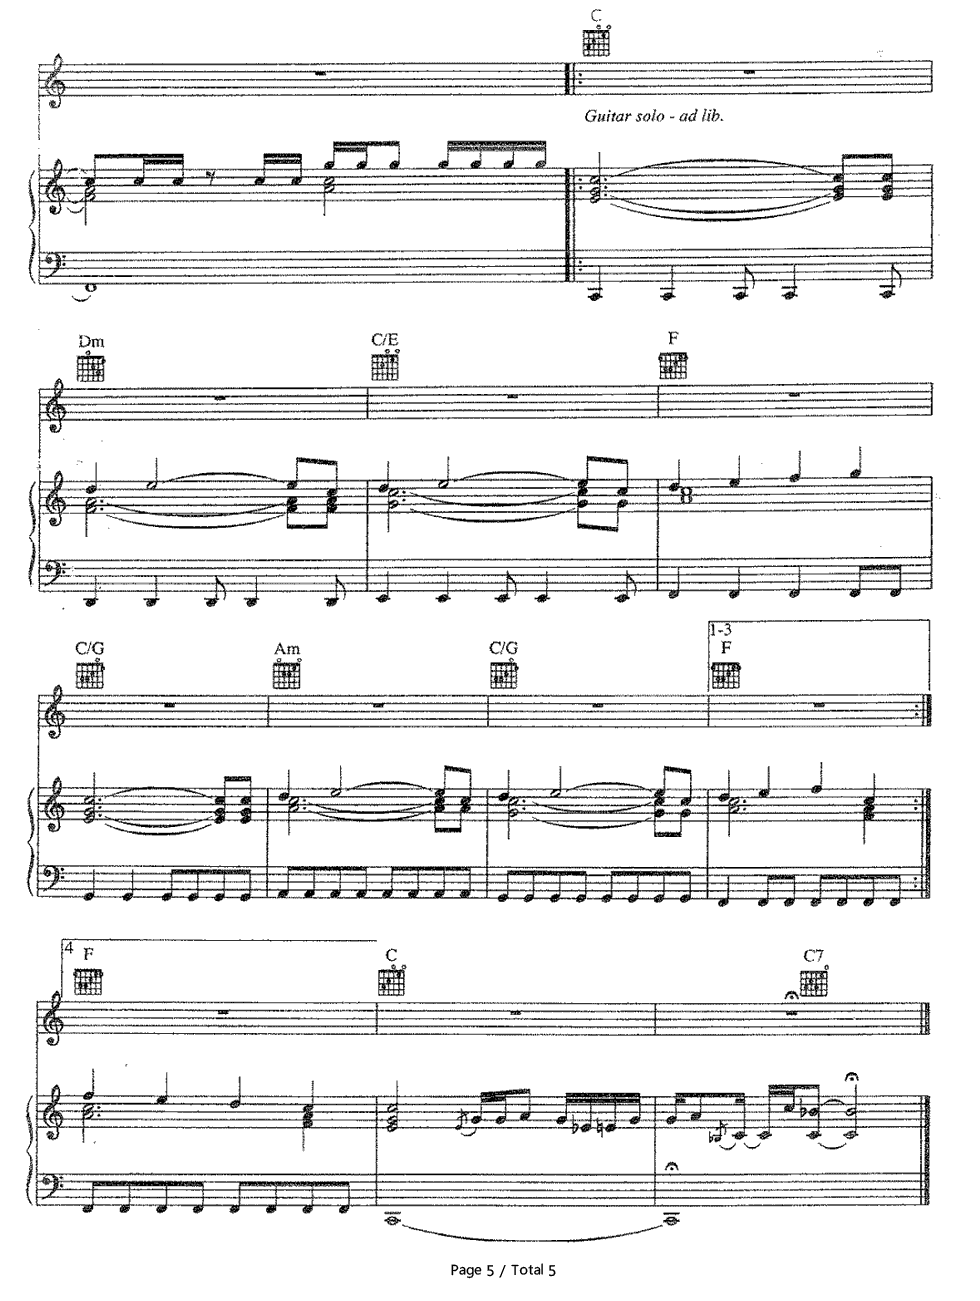 Amazing Aerosmith Stave Preview 5 Free Piano Sheet Music Piano Chords